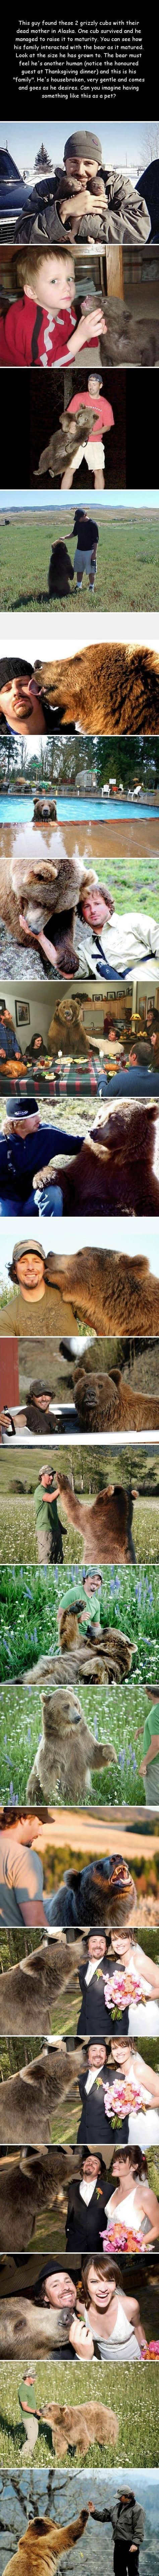 this dude has a freaking grizzly as his pet.